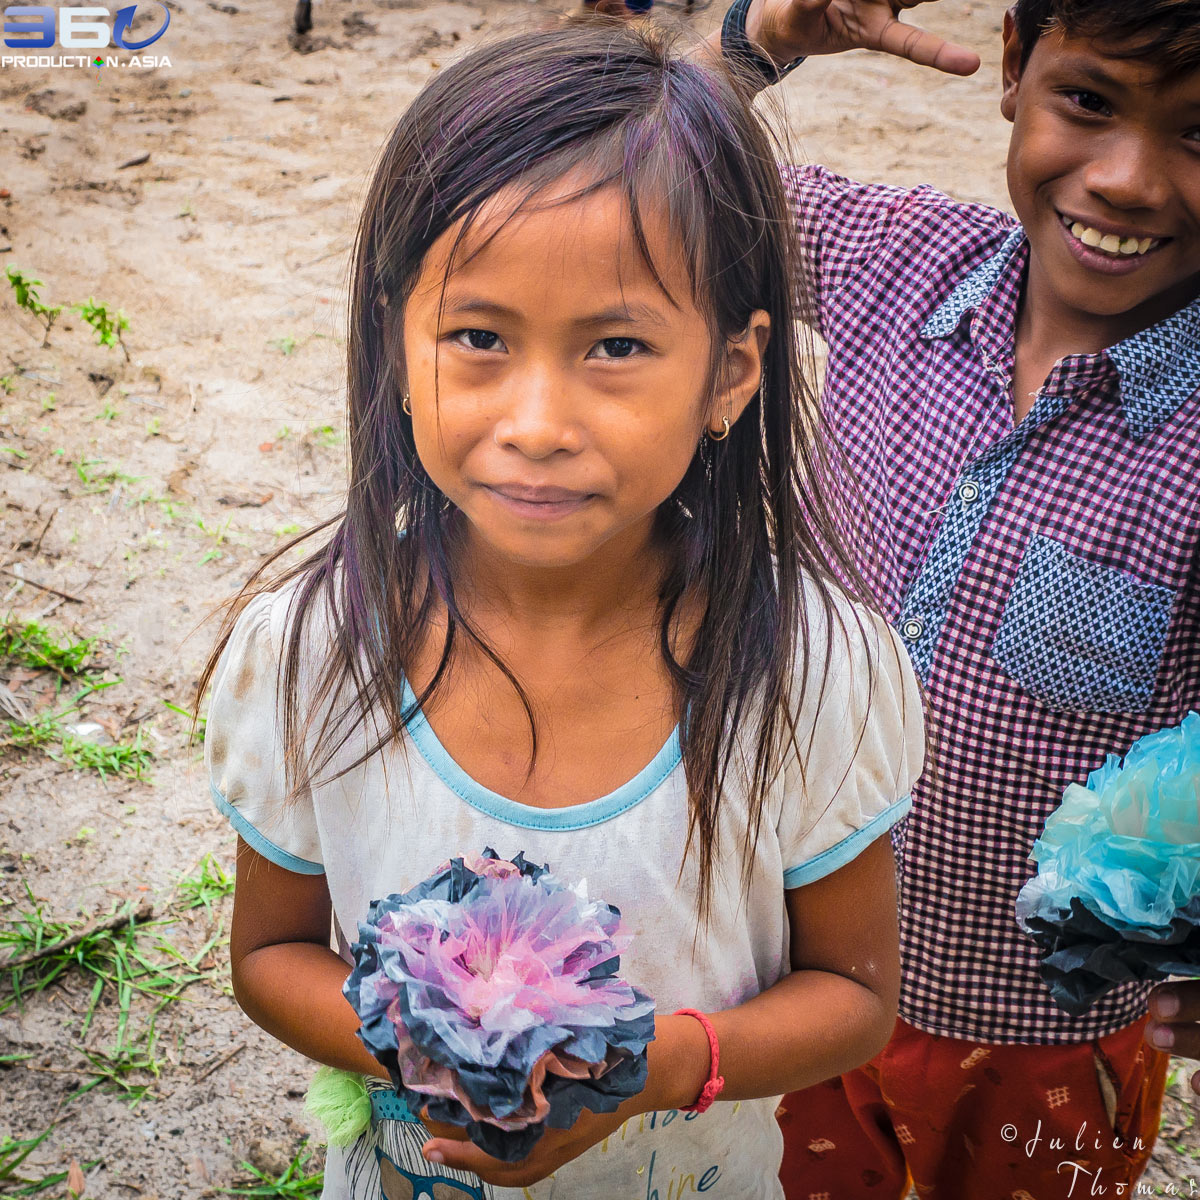 Schoolchildren holding their plastic flowers they have created from plastic waste during a filled ecological and crafty plastic waste project by Julien Thomas